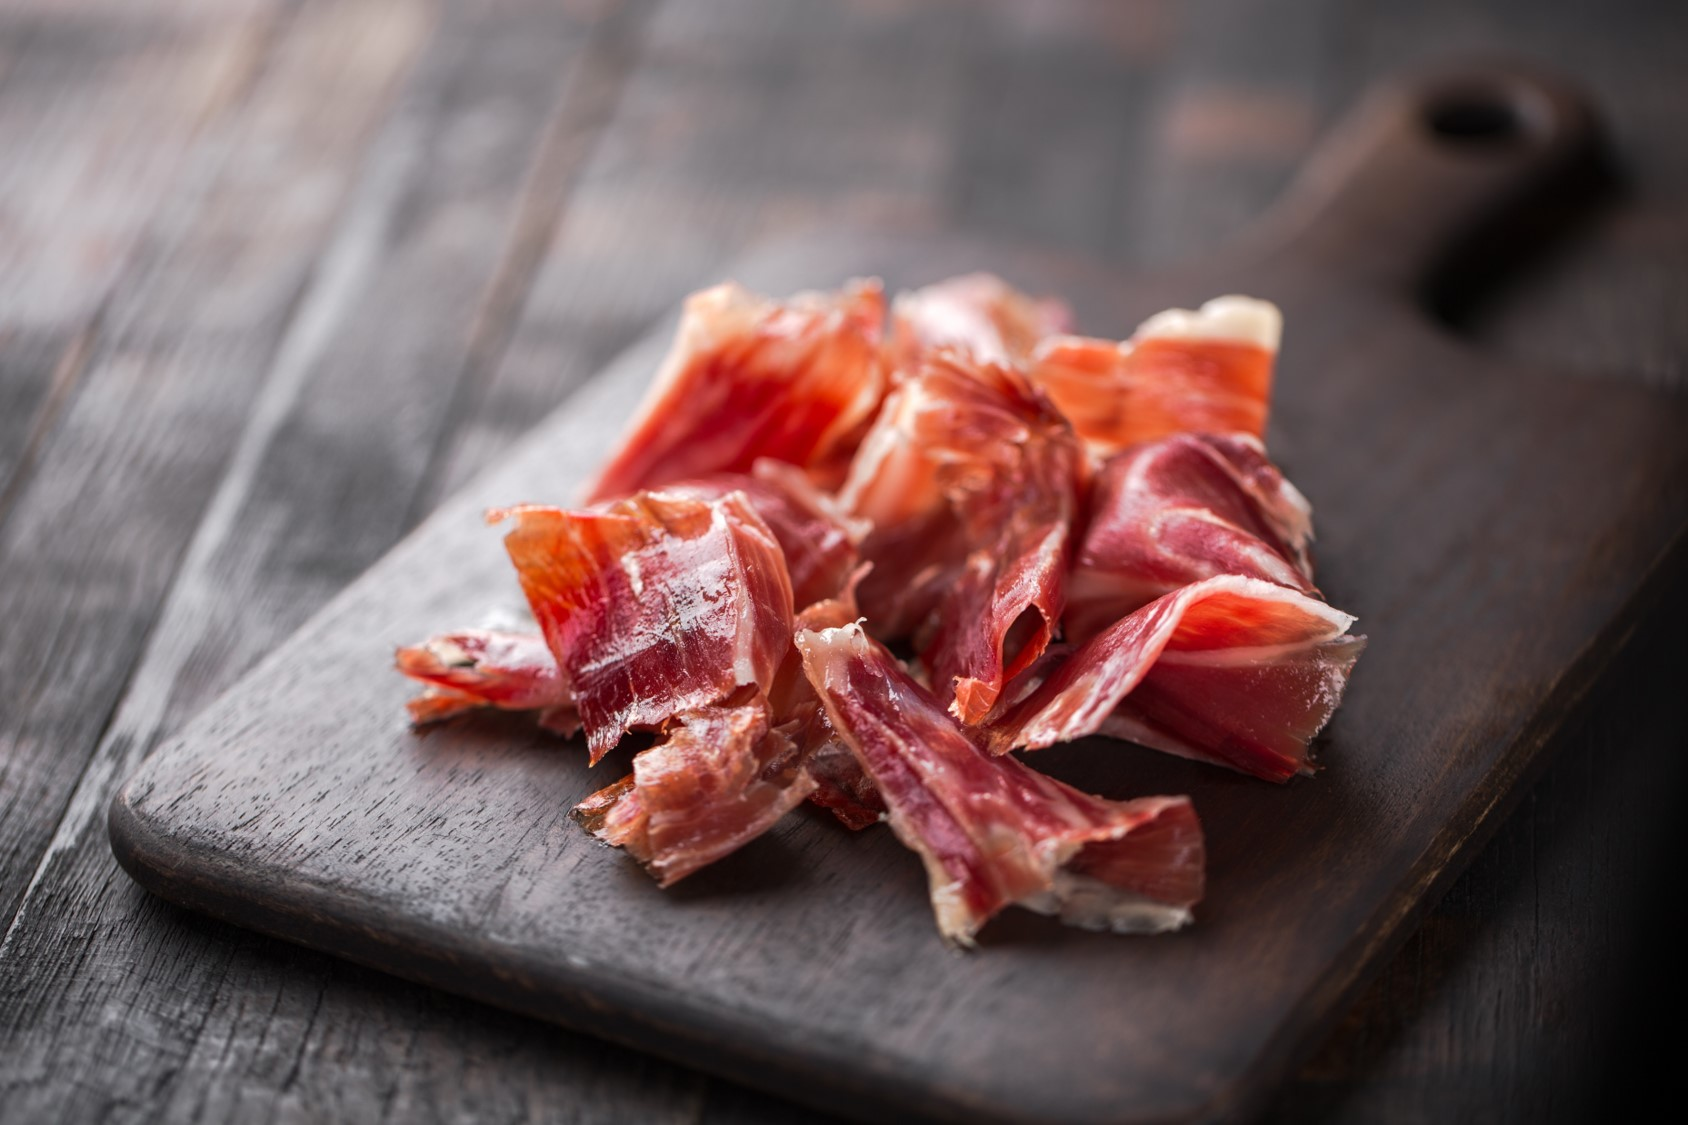 Jamon in wooden table